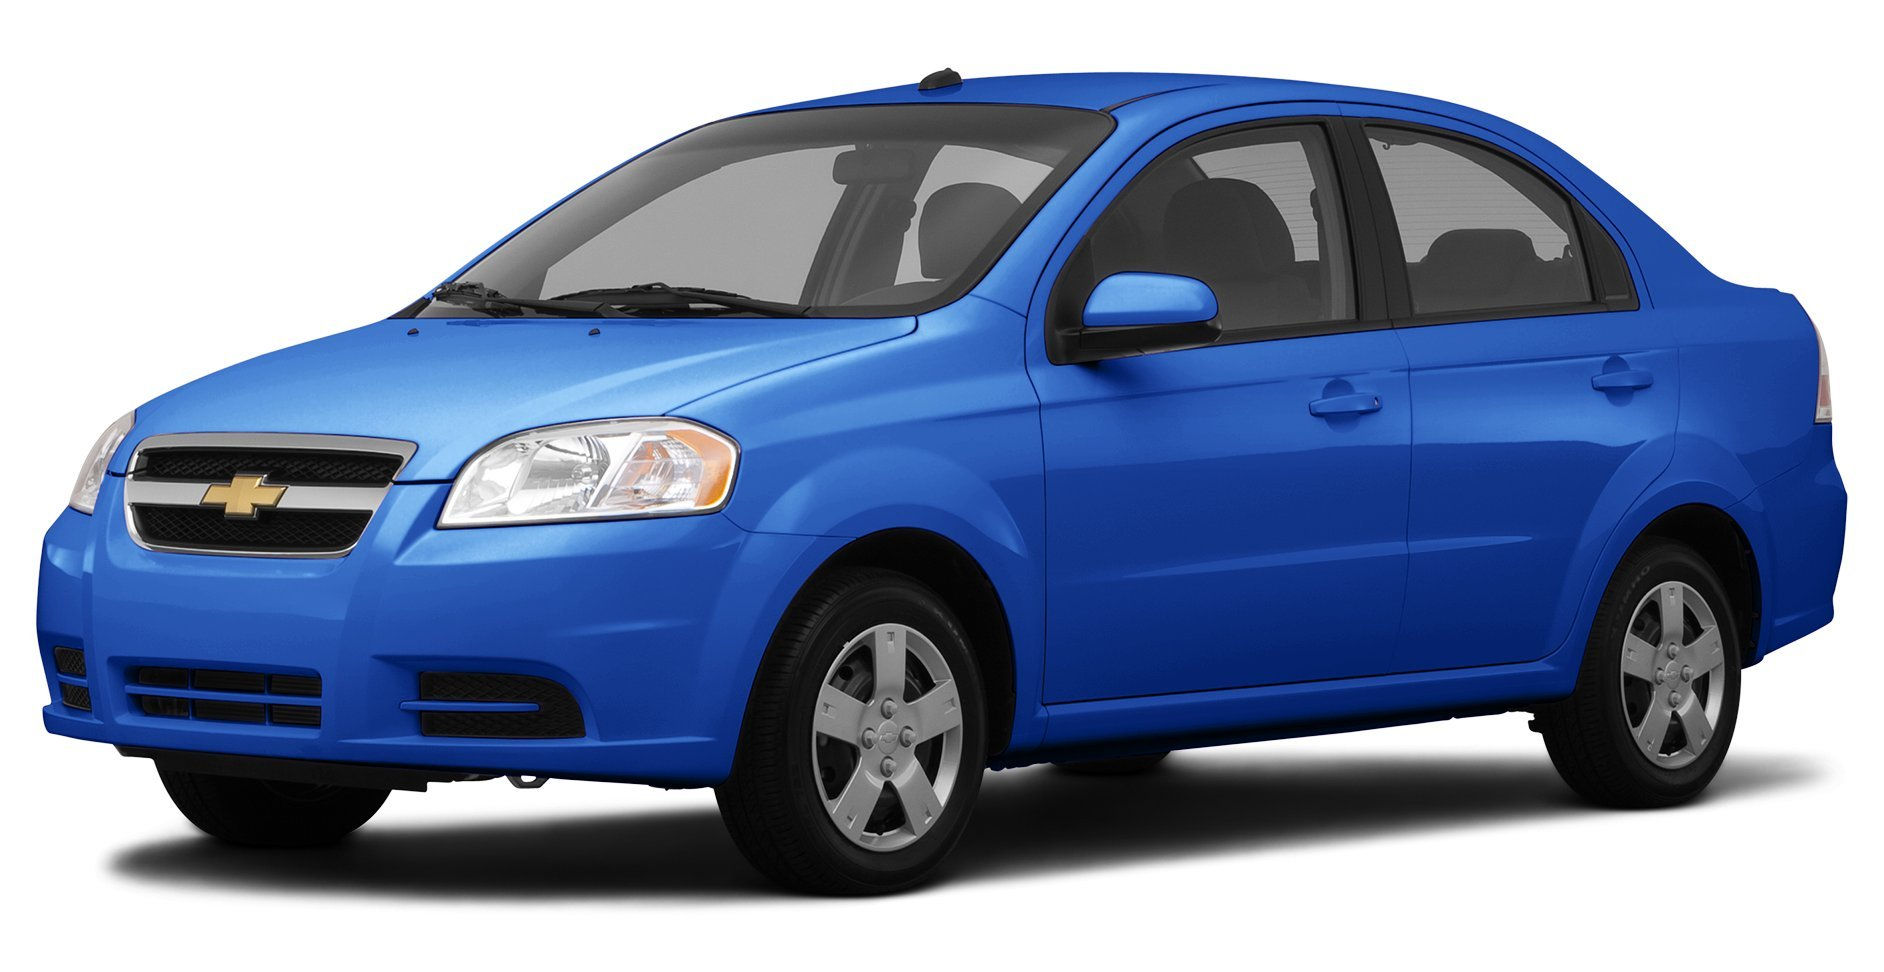 2011 kia rio reviews images and specs vehicles. Black Bedroom Furniture Sets. Home Design Ideas